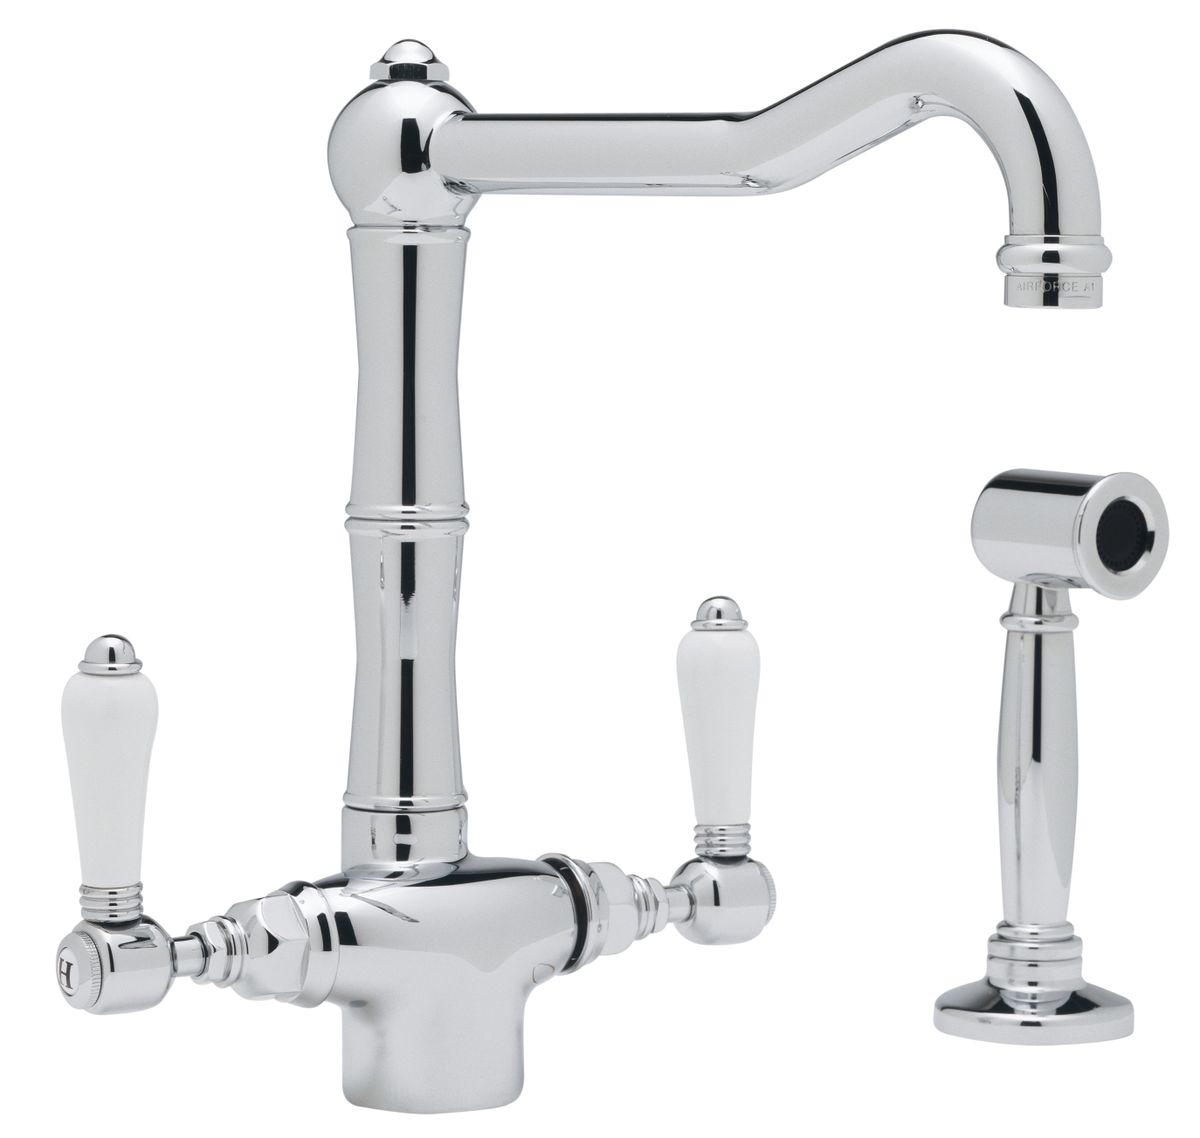 Rohl country kitchen single hole column spout kitchen faucet with sidespray